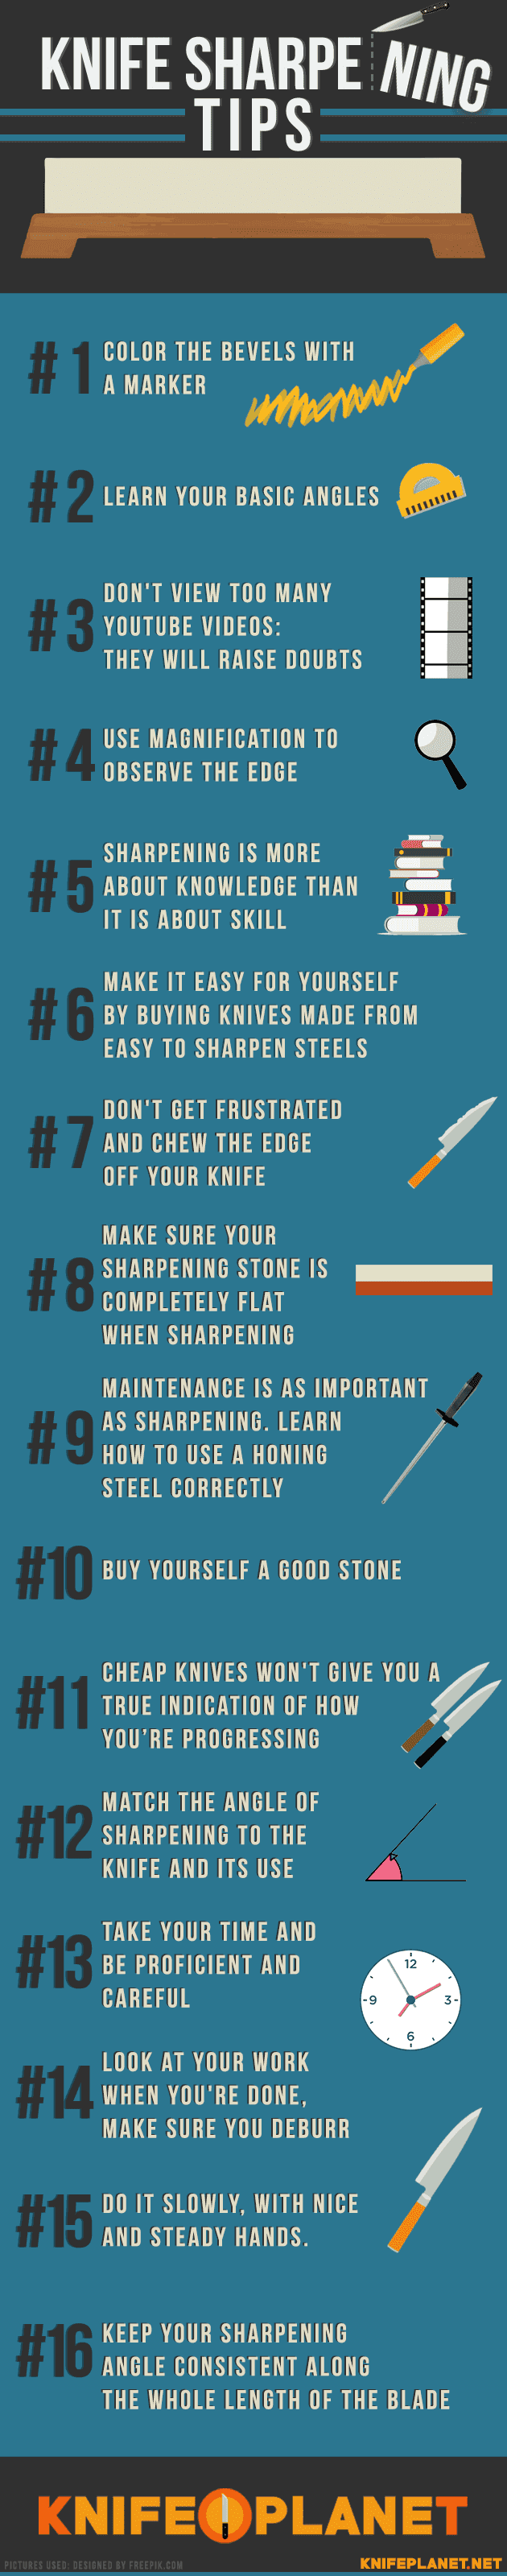 Knife sharpening for beginners